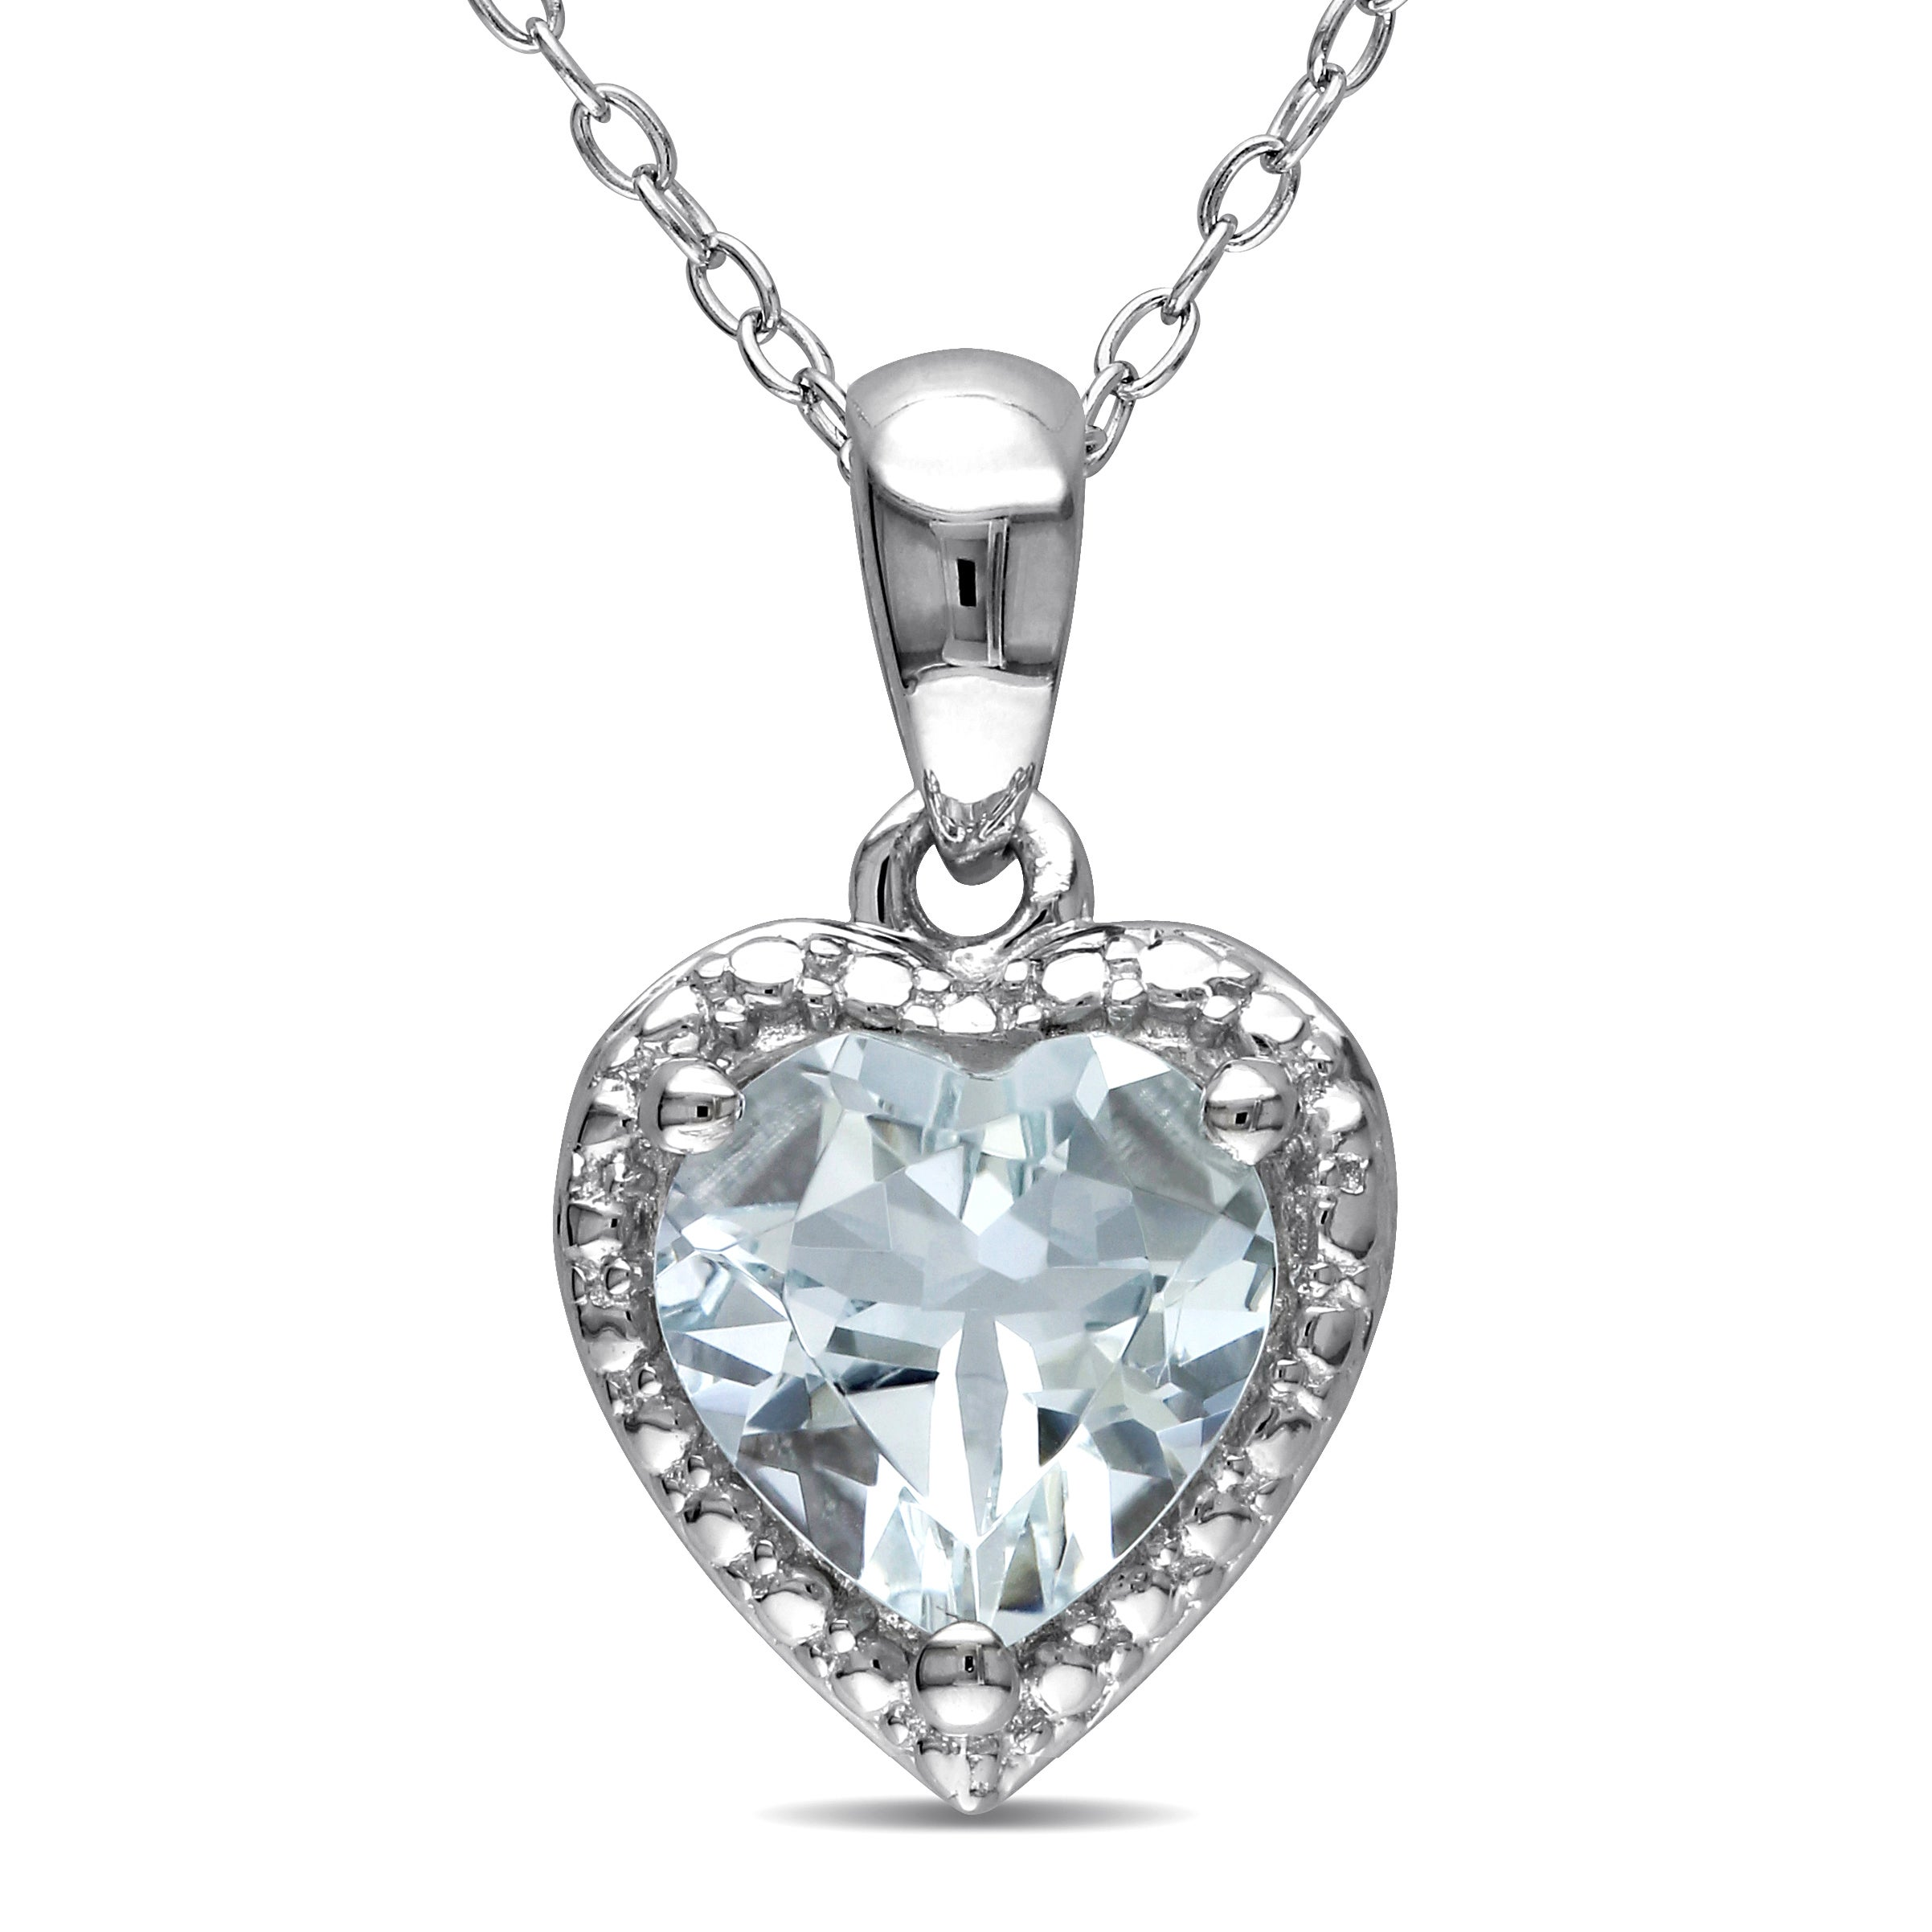 Shop miadora sterling silver aquamarine heart necklace free shop miadora sterling silver aquamarine heart necklace free shipping today overstock 9776820 aloadofball Gallery